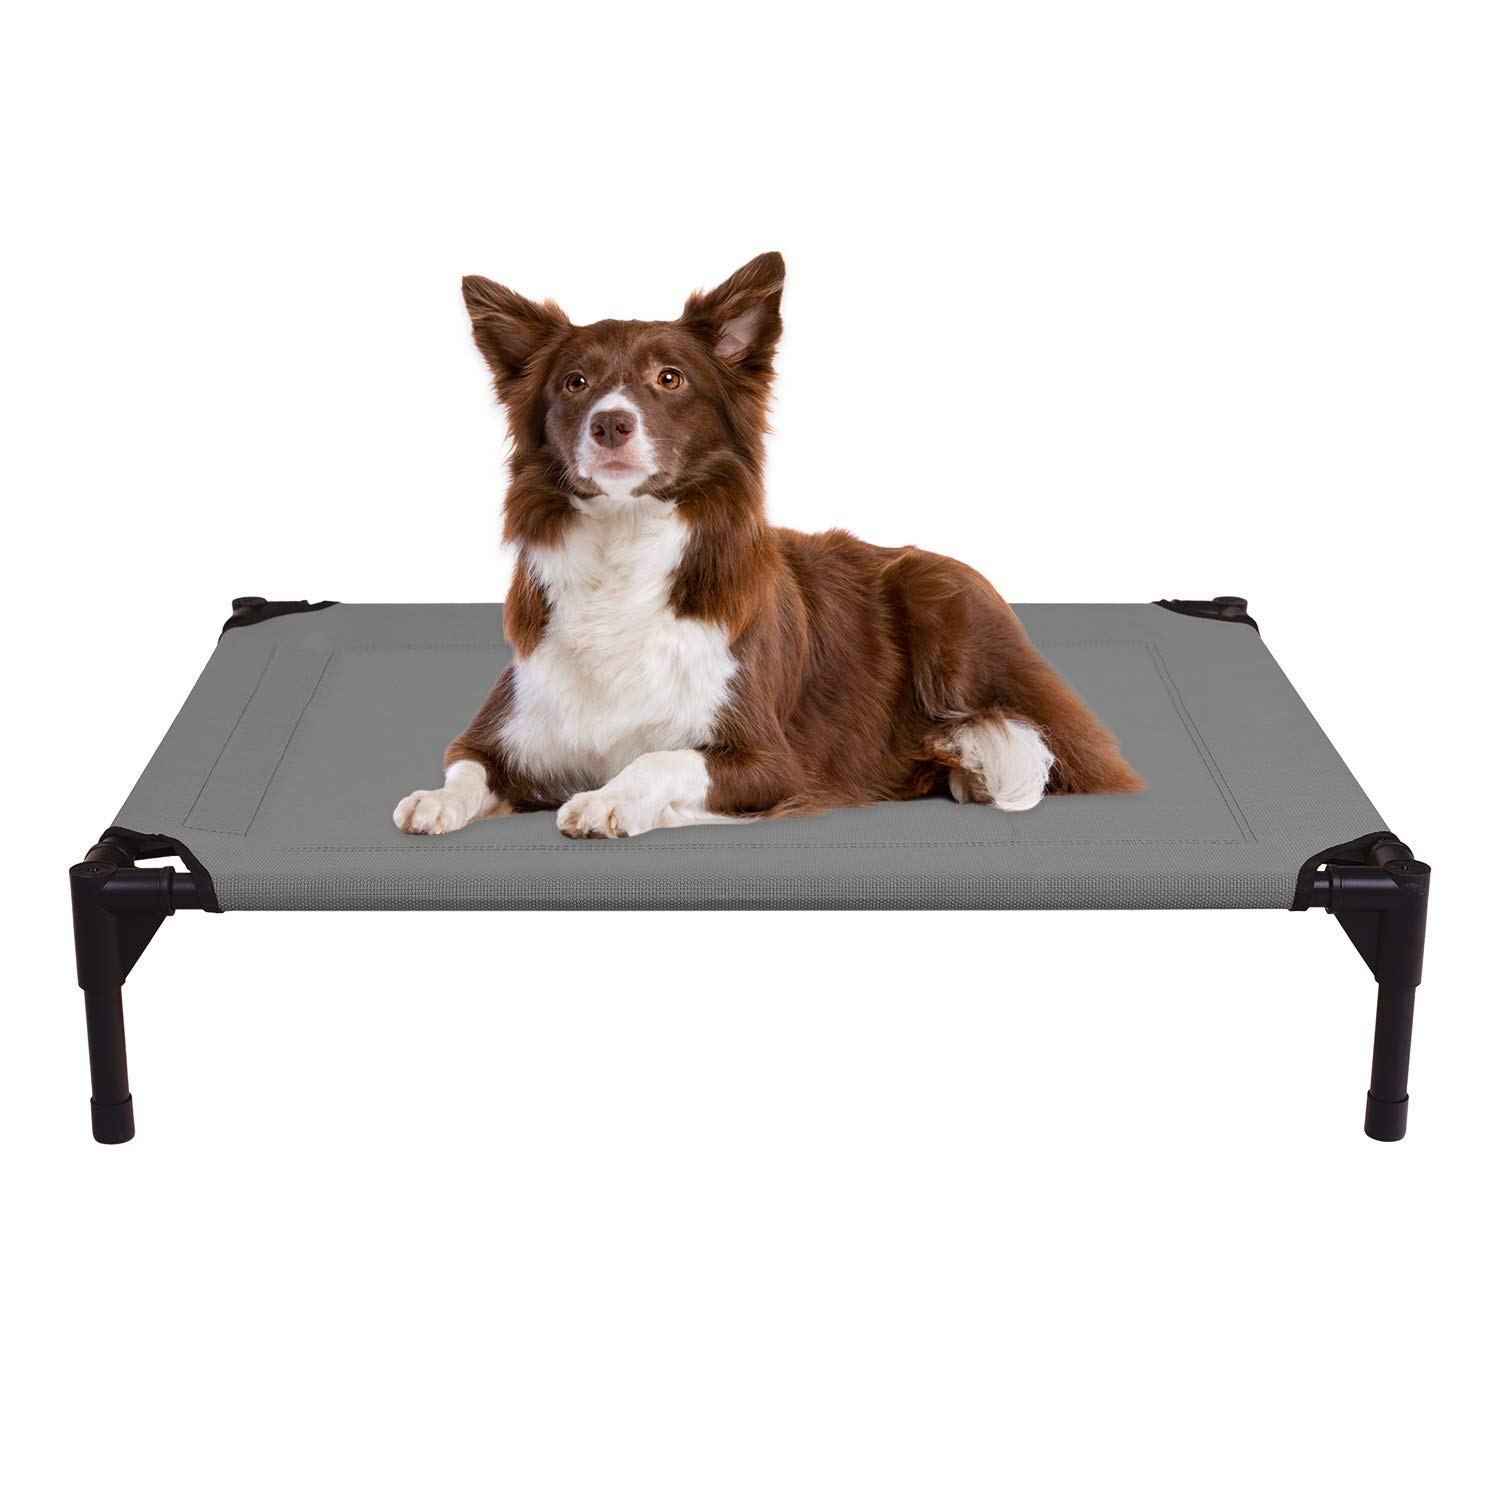 Veehoo Cooling Elevated Dog Bed For Summer Portable Raised Pet